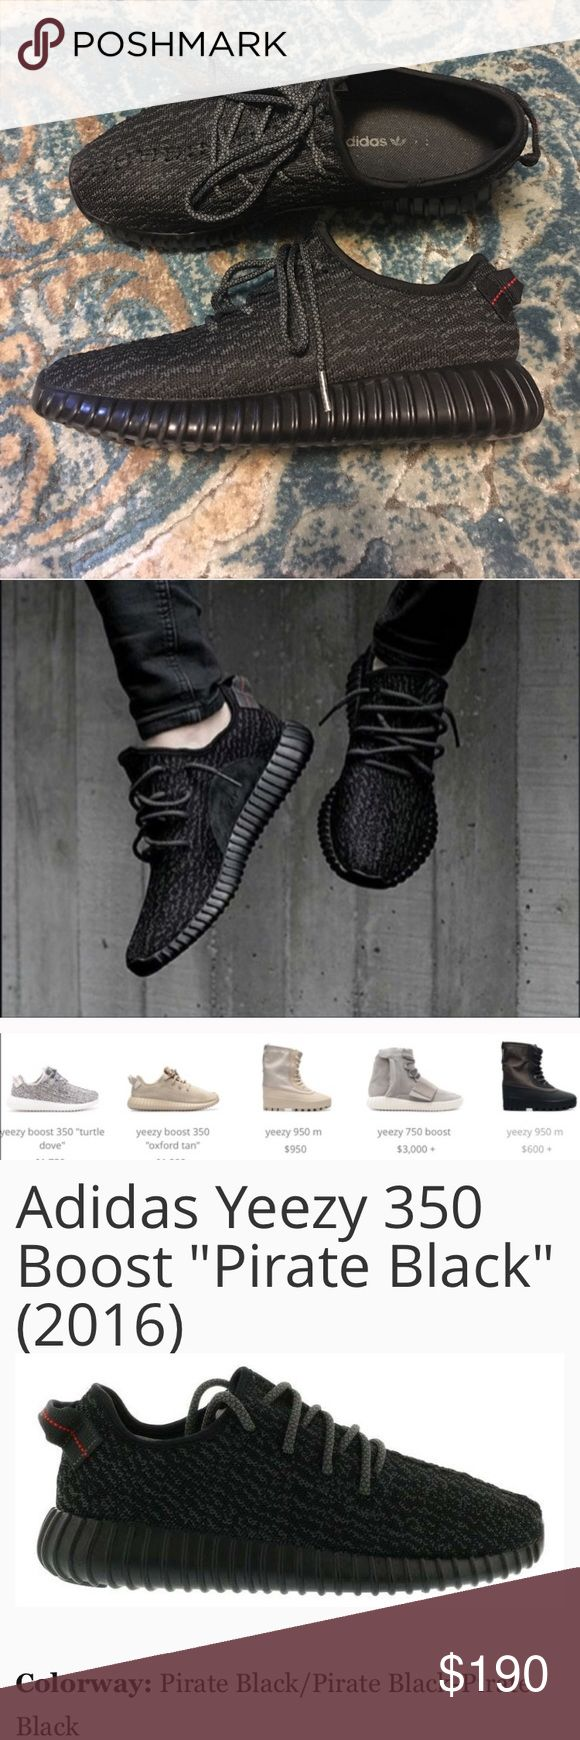 Yeezy Boost 350 Pirate Black UA **PLEASE READ** These are a pair of very well made UA (Non Authentic) Yeezy Boost 350 Sneakers by  Adidas. They were given as a gift and if they were not half a size too small for me I'd be rockin them all over NYC lol. I'm not a big fan of non authentic gear but these pass the test! Please see pics I have provided for information and comparison. Price reflects how good these look. Please leave your questions below, PRICE FIRM 💪🏽 adidas Shoes Sneakers